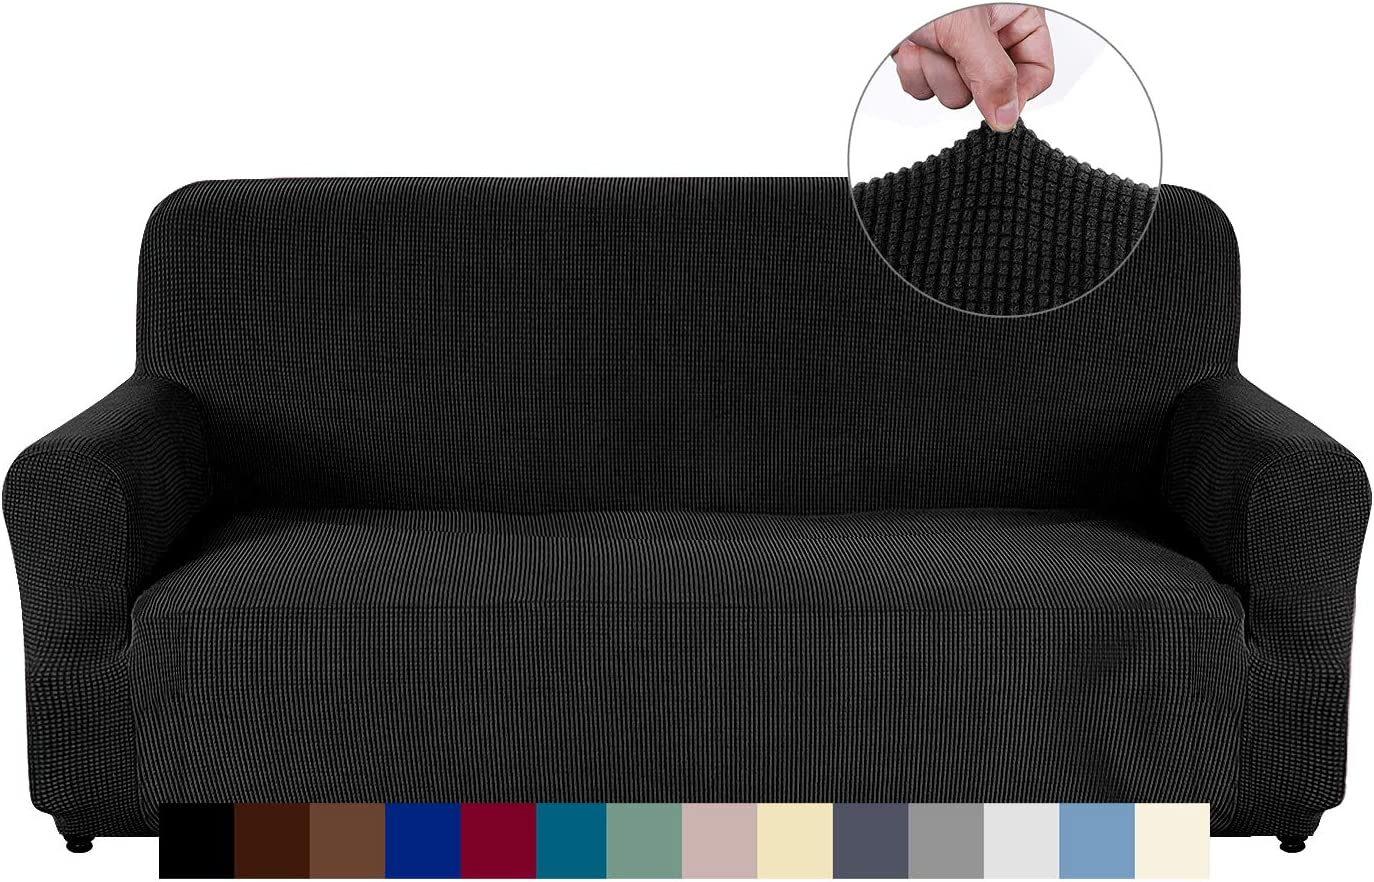 AUJOY Couch Cover Stretch 1-Piece Sofa Slipcover for 3 Cushion Couch Jacquard Spandex Fabric Furniture Protector with Anti-Slip Foams (Sofa, Black)